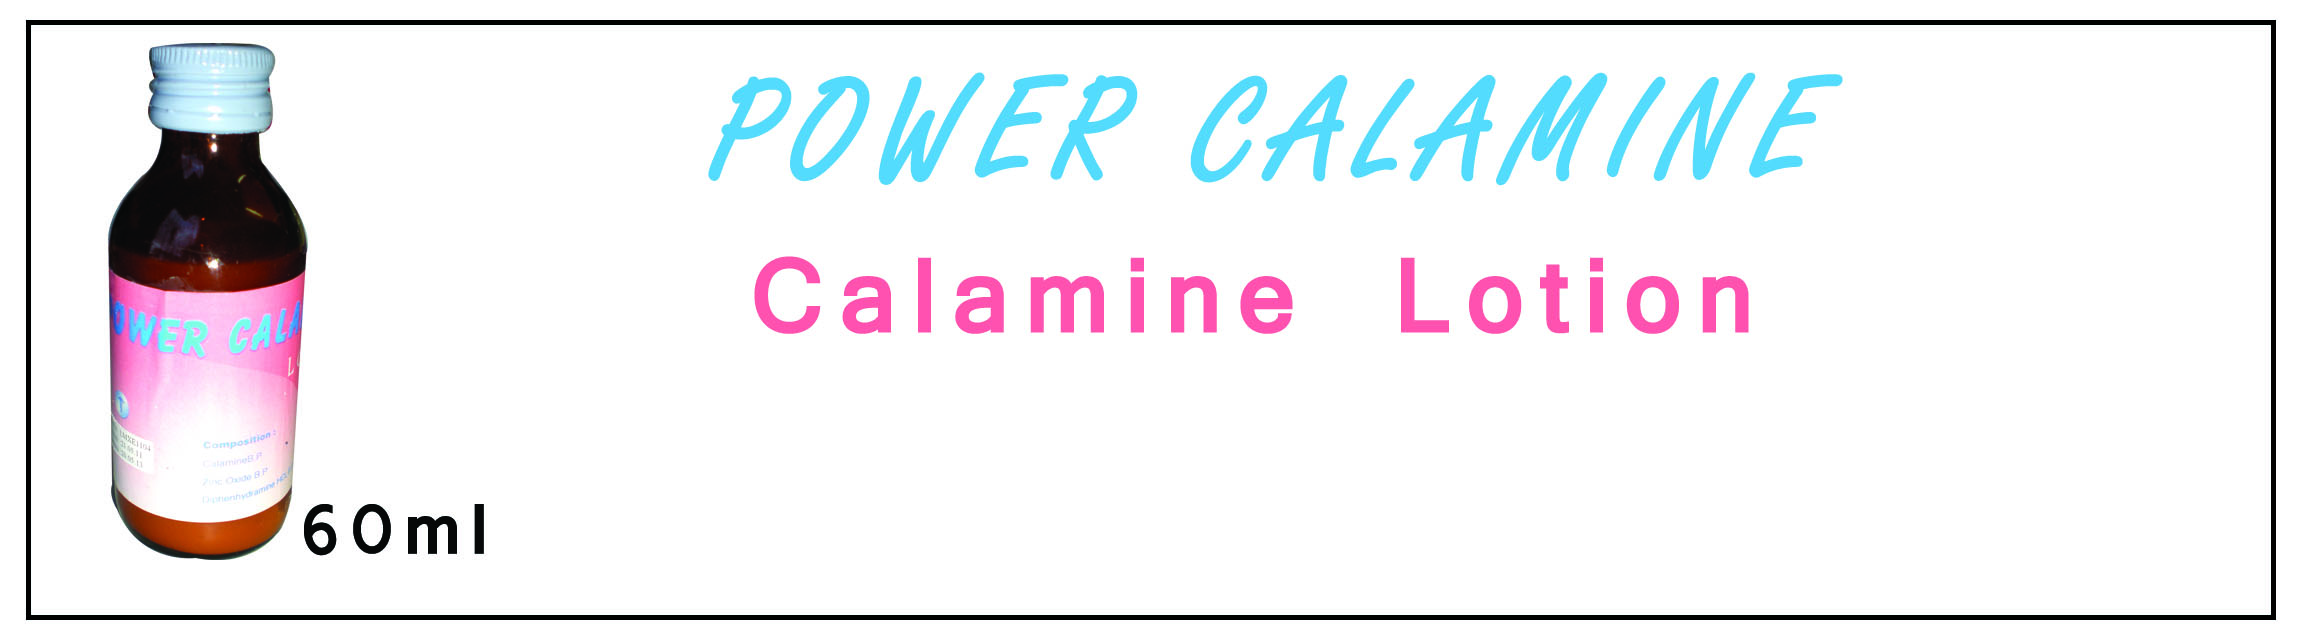 Power Calamine